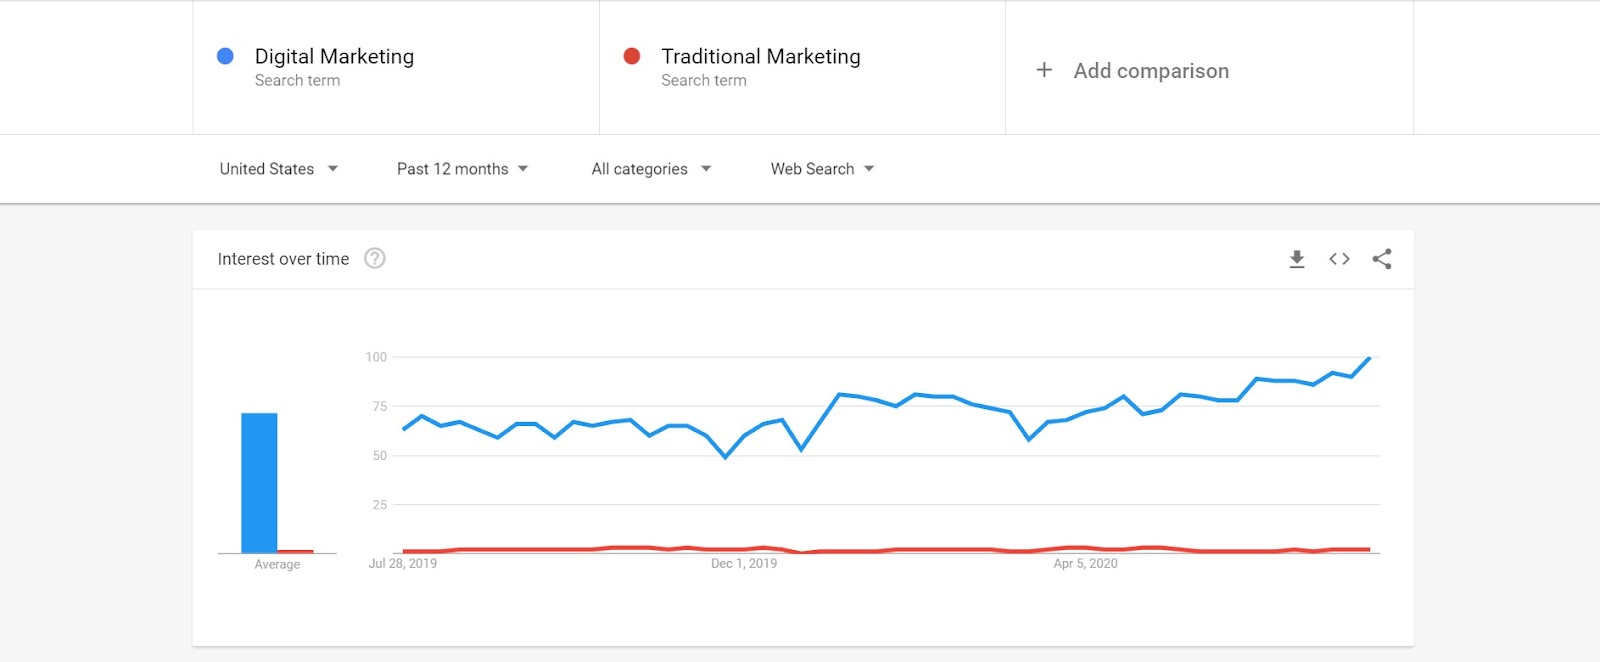 Check out the Google trends graph